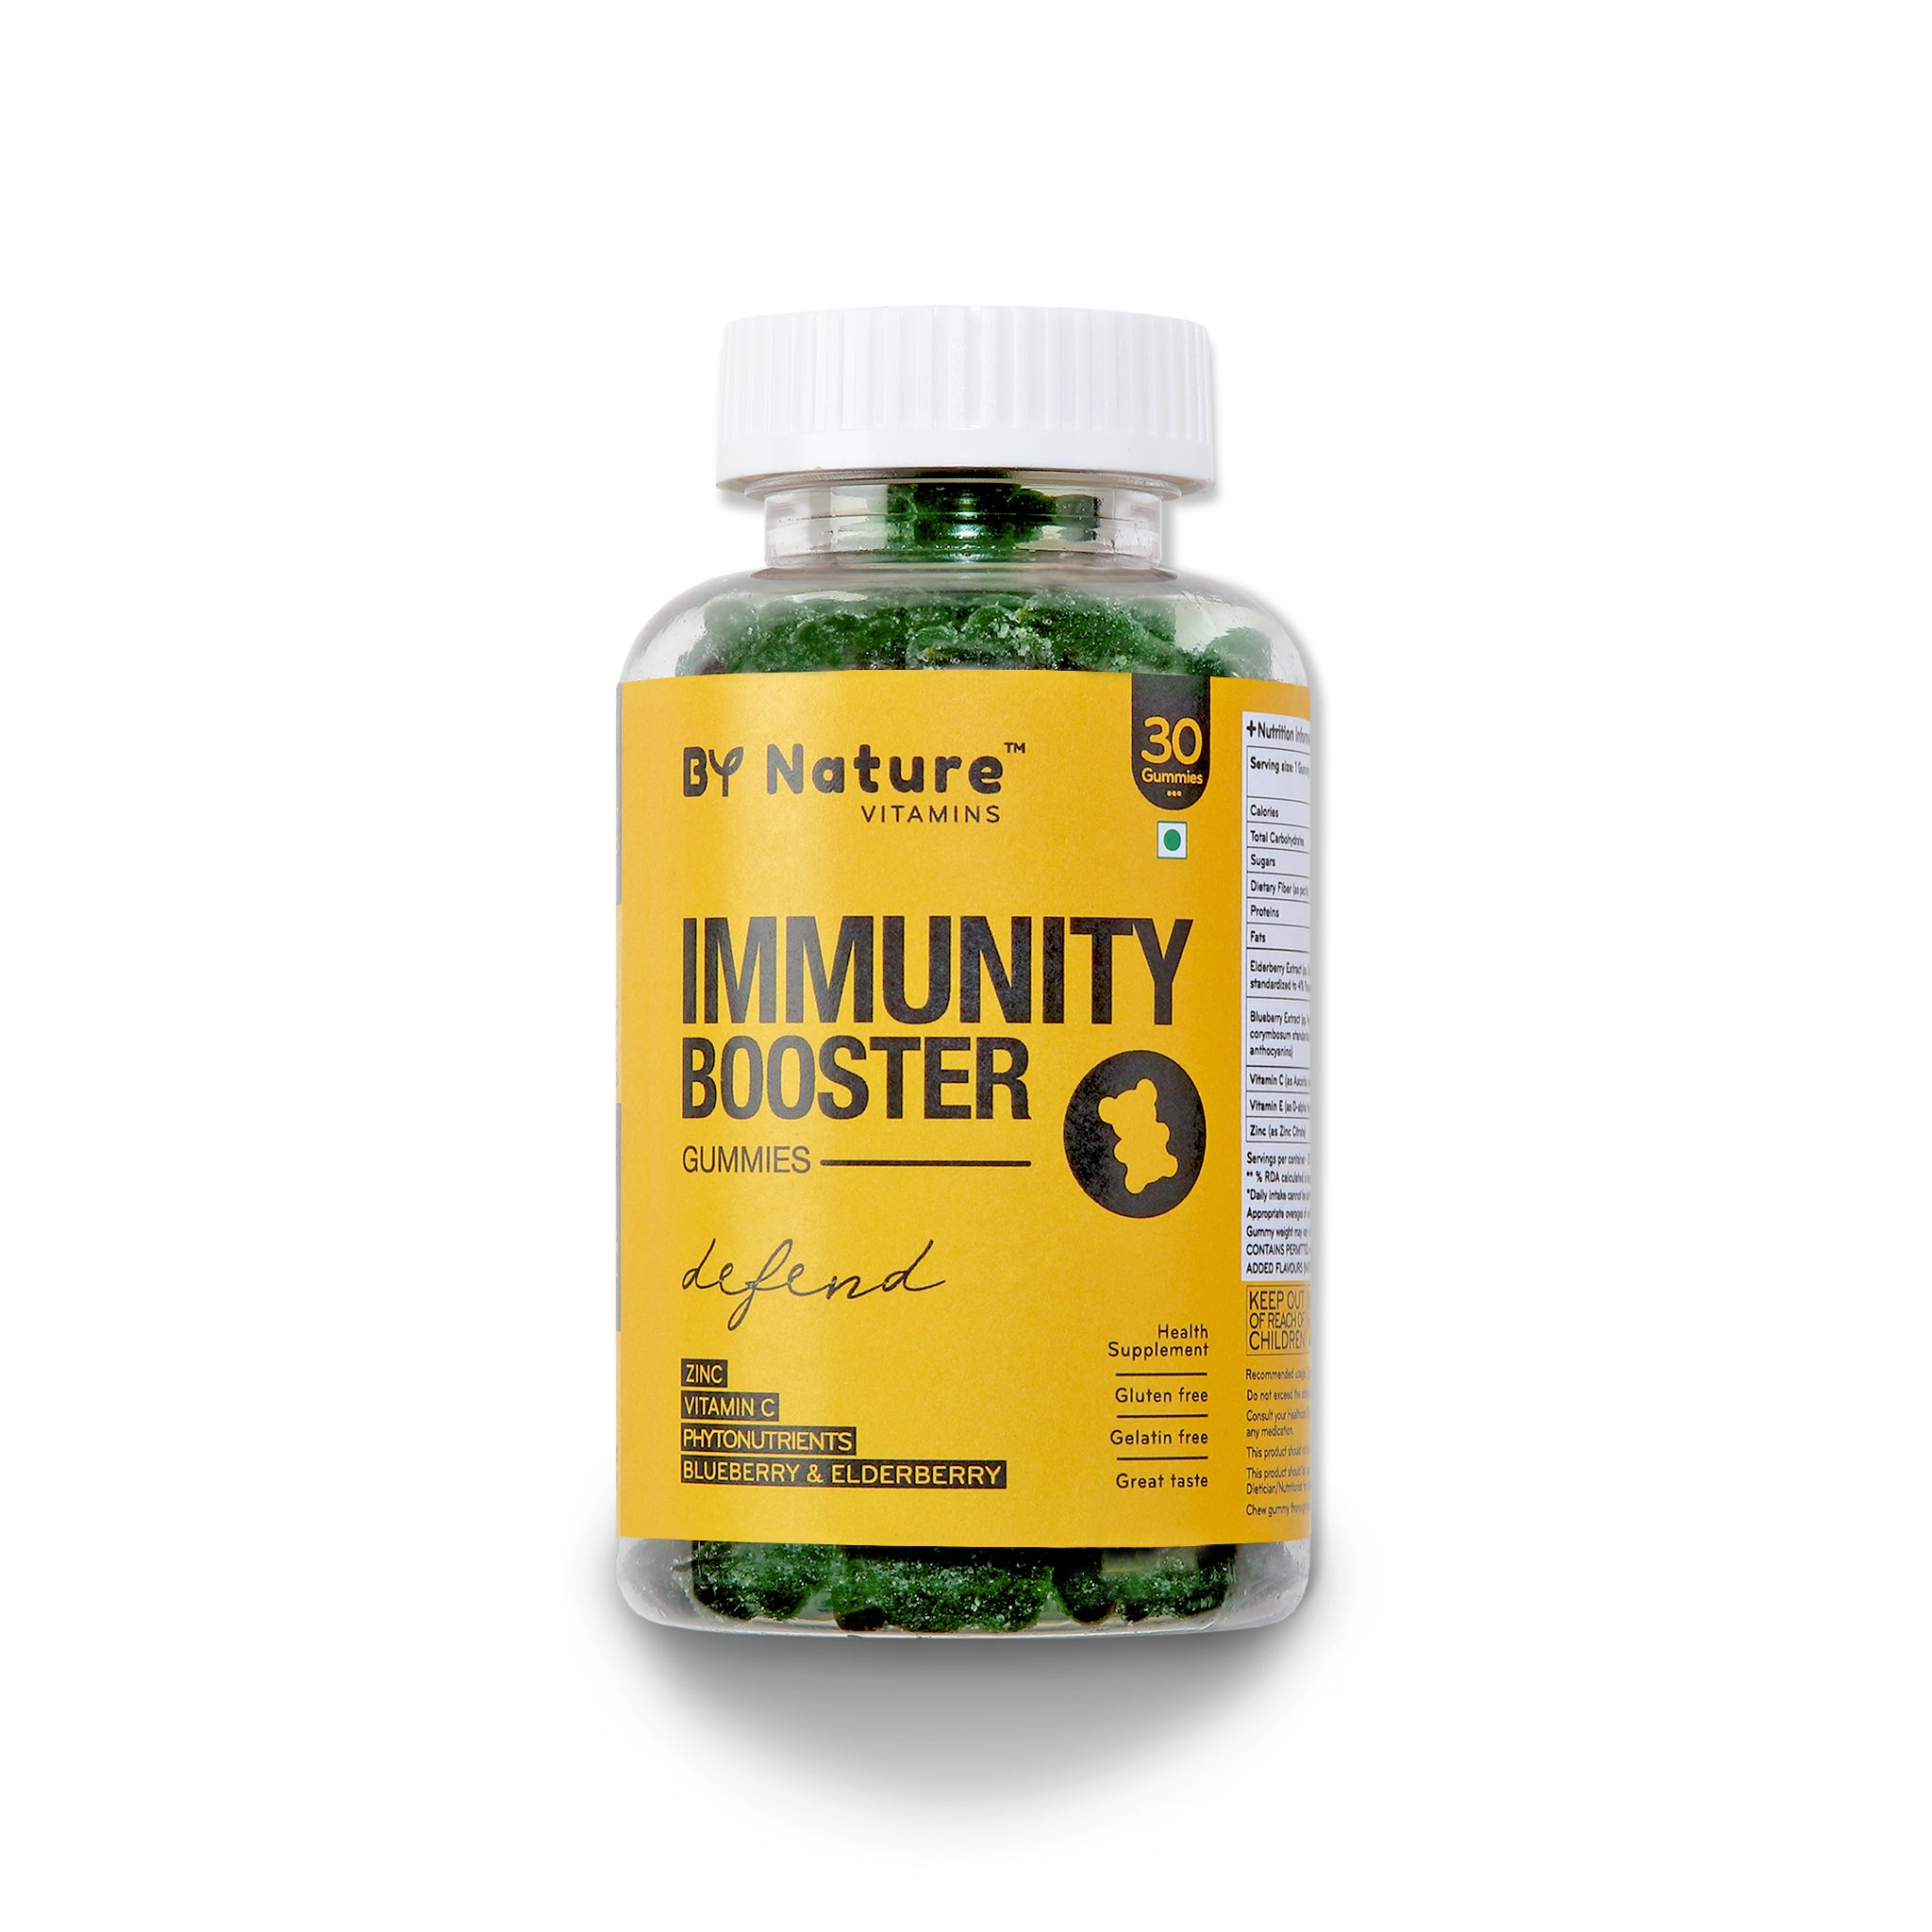 By Nature Immunity Booster Vitamin Gummies - 30 gummies (1 month pack)